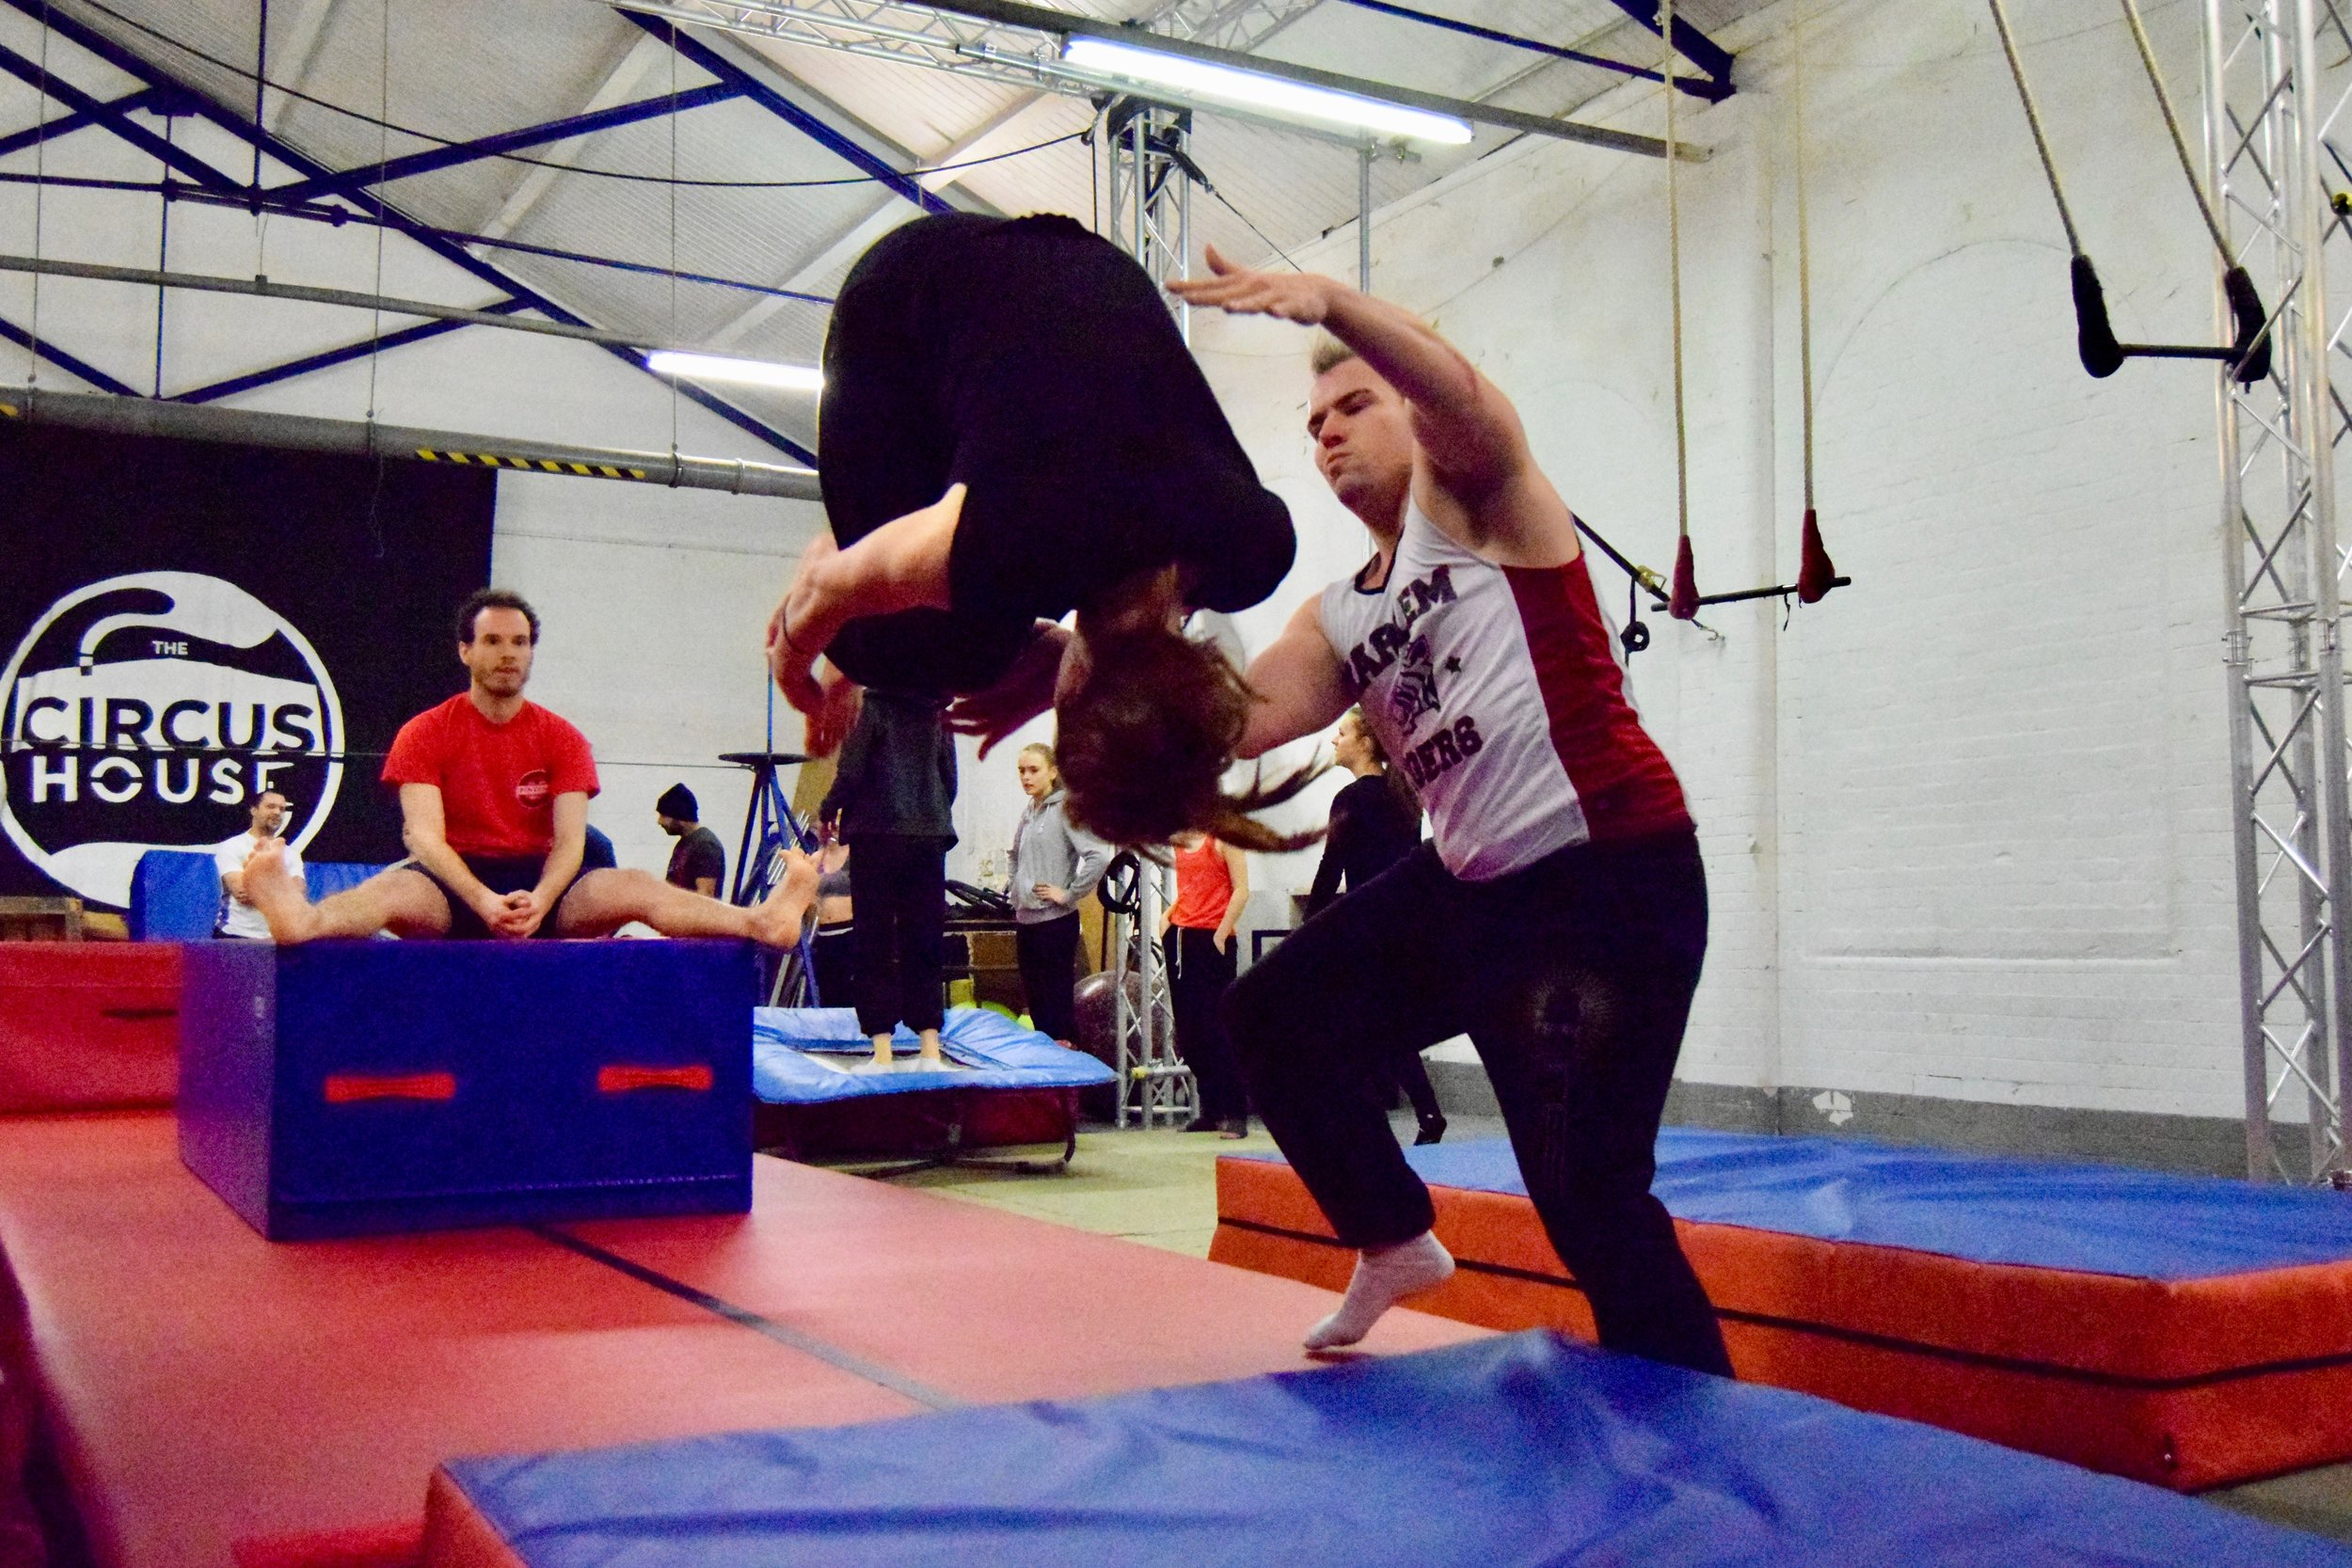 Copy of Copy of Tumbling Front Tuck (front flick)